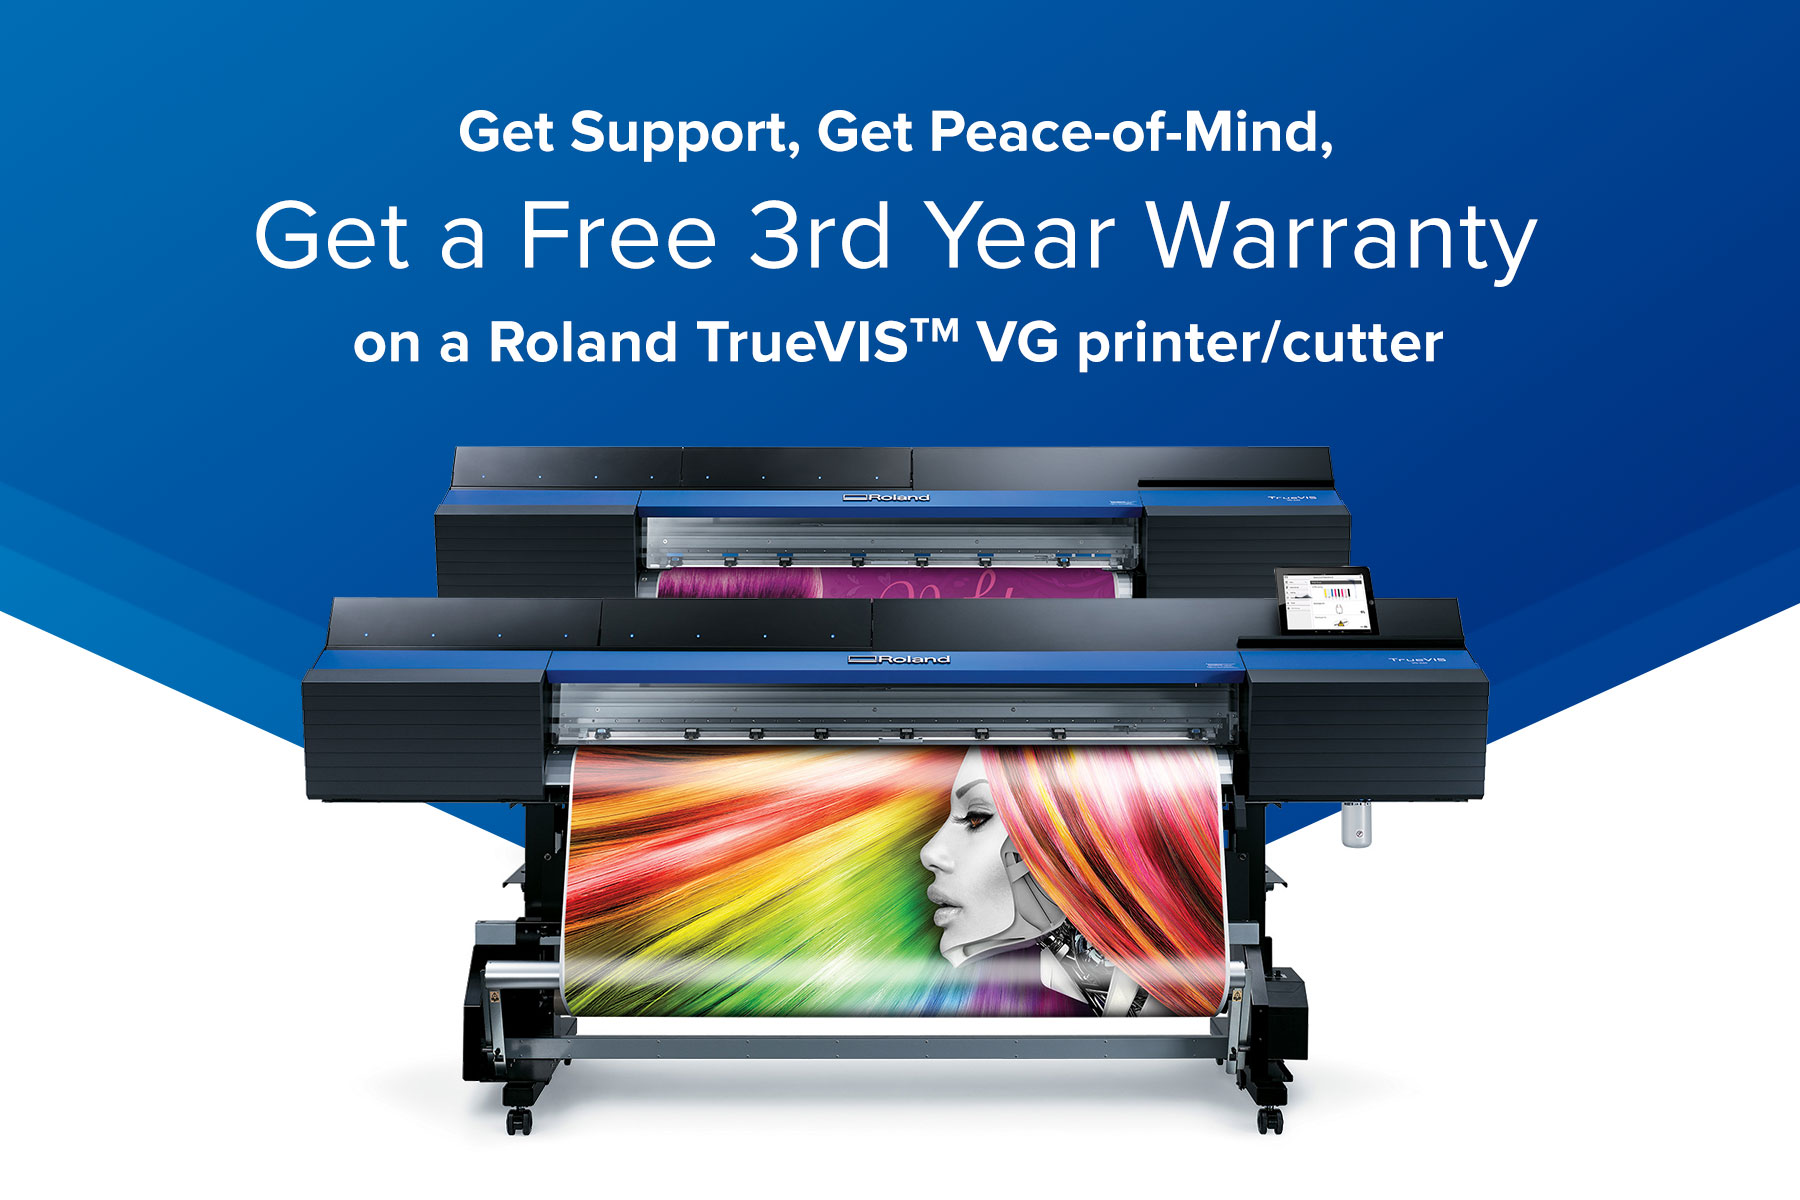 Roland TrueVIS VG Series Free Third-Year Warranty Promo